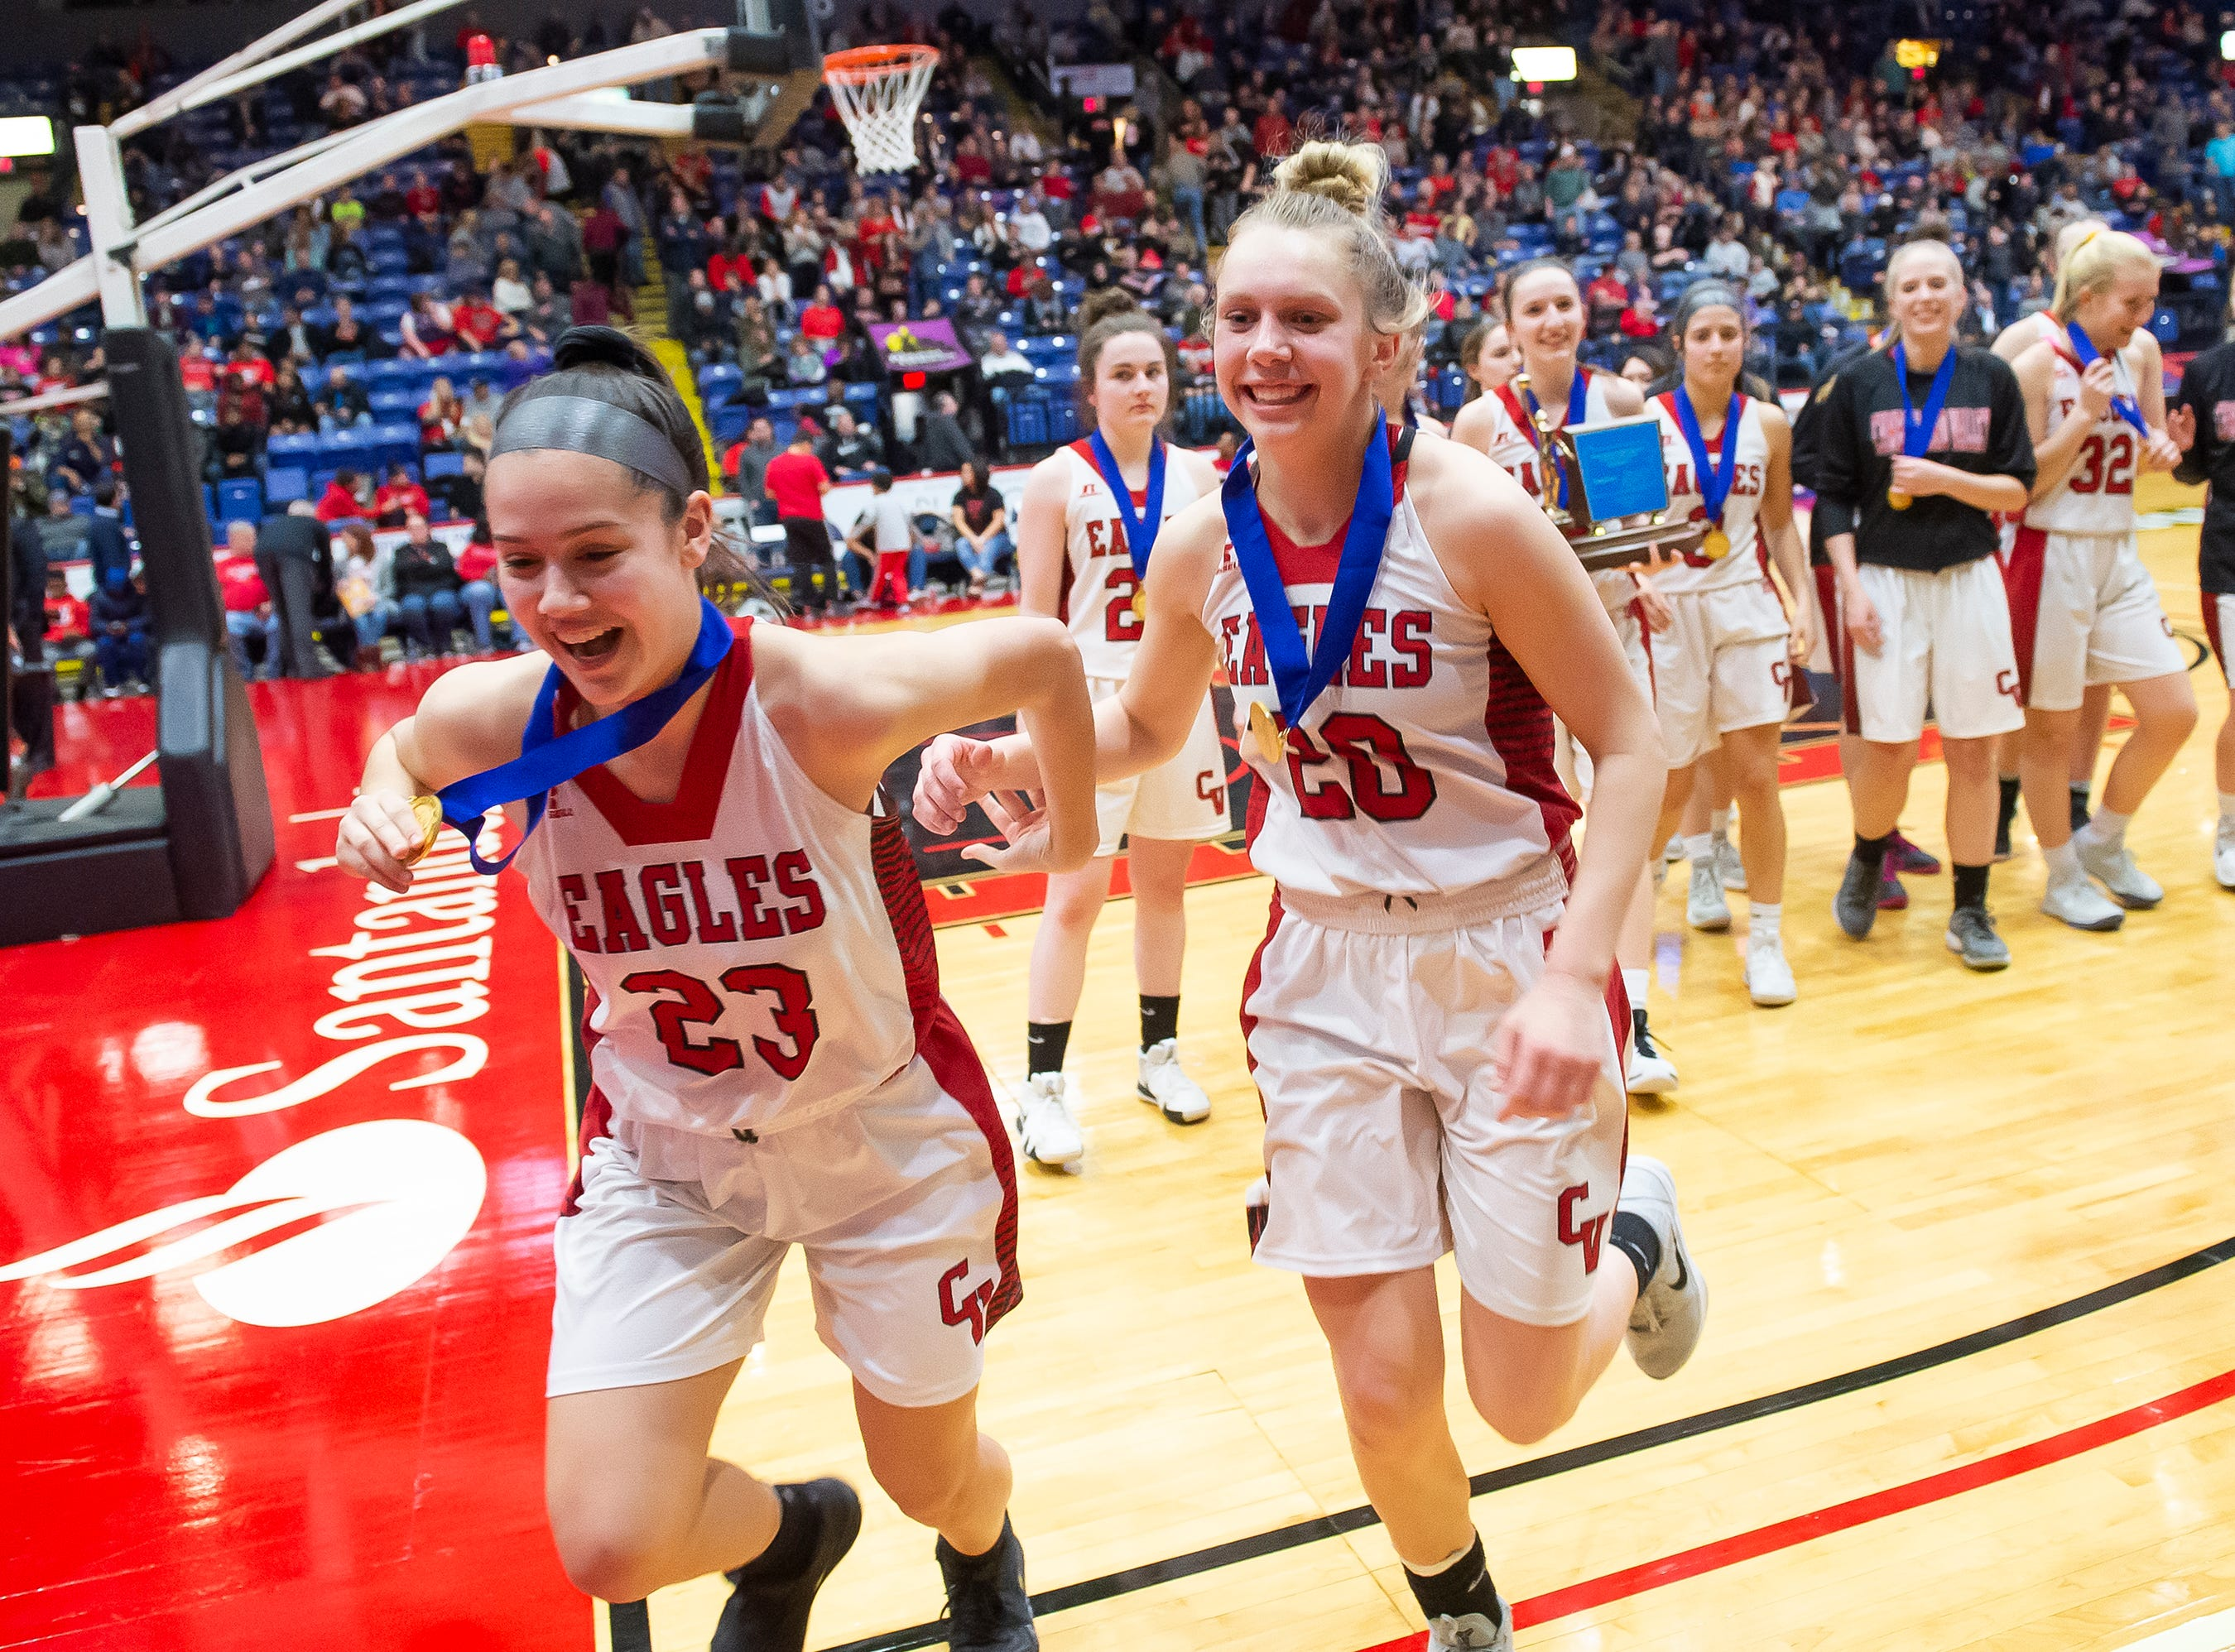 Cumberland Valley's Courtney Campbell (23) and Julie Jekot (20) run off the court with their gold medals after defeating Dallastown in the District 3 6A girls championship game at Santander Arena in Reading, Pa., Friday, March 1, 2019. The Eagles won 33-27.